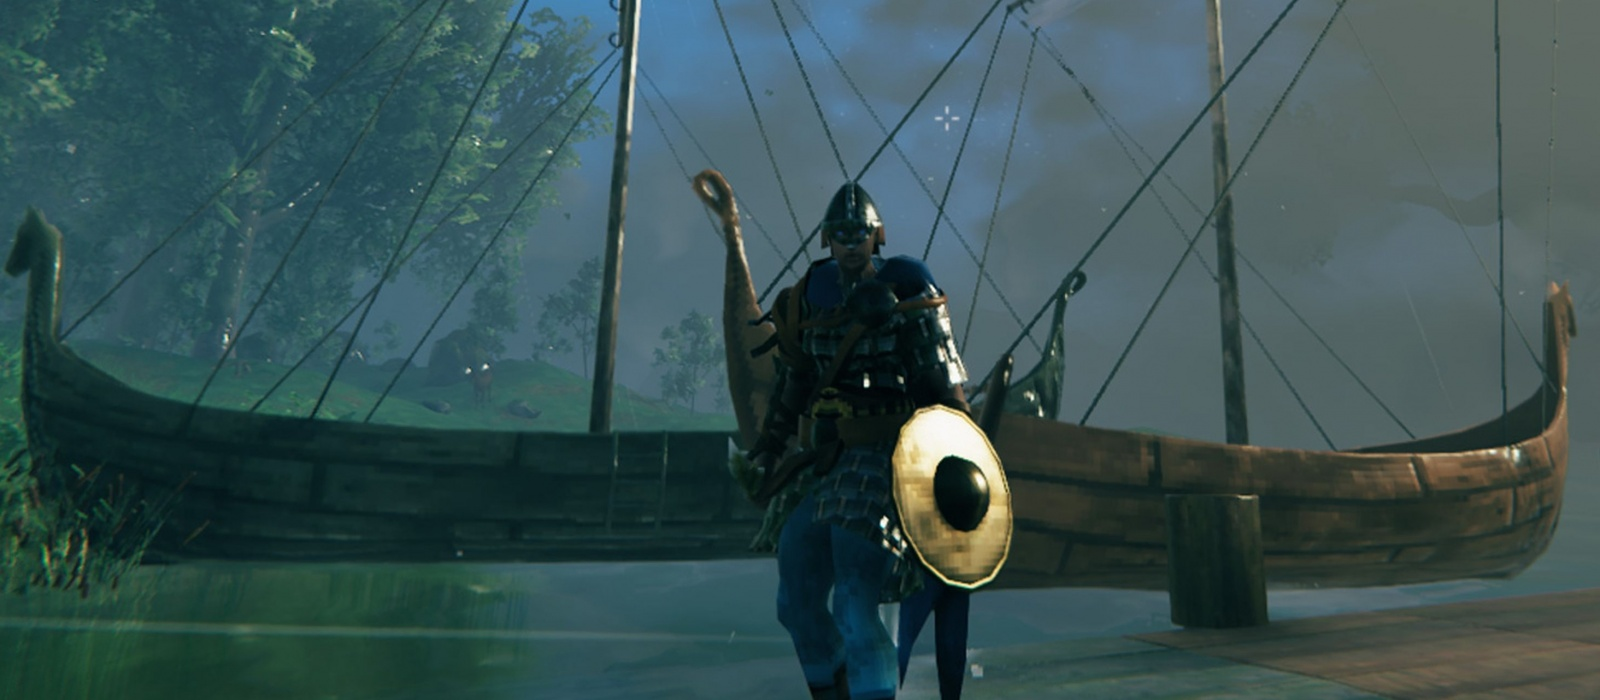 Where to find and how to kill the sea serpent in Valheim to get scales and craft a snake shield